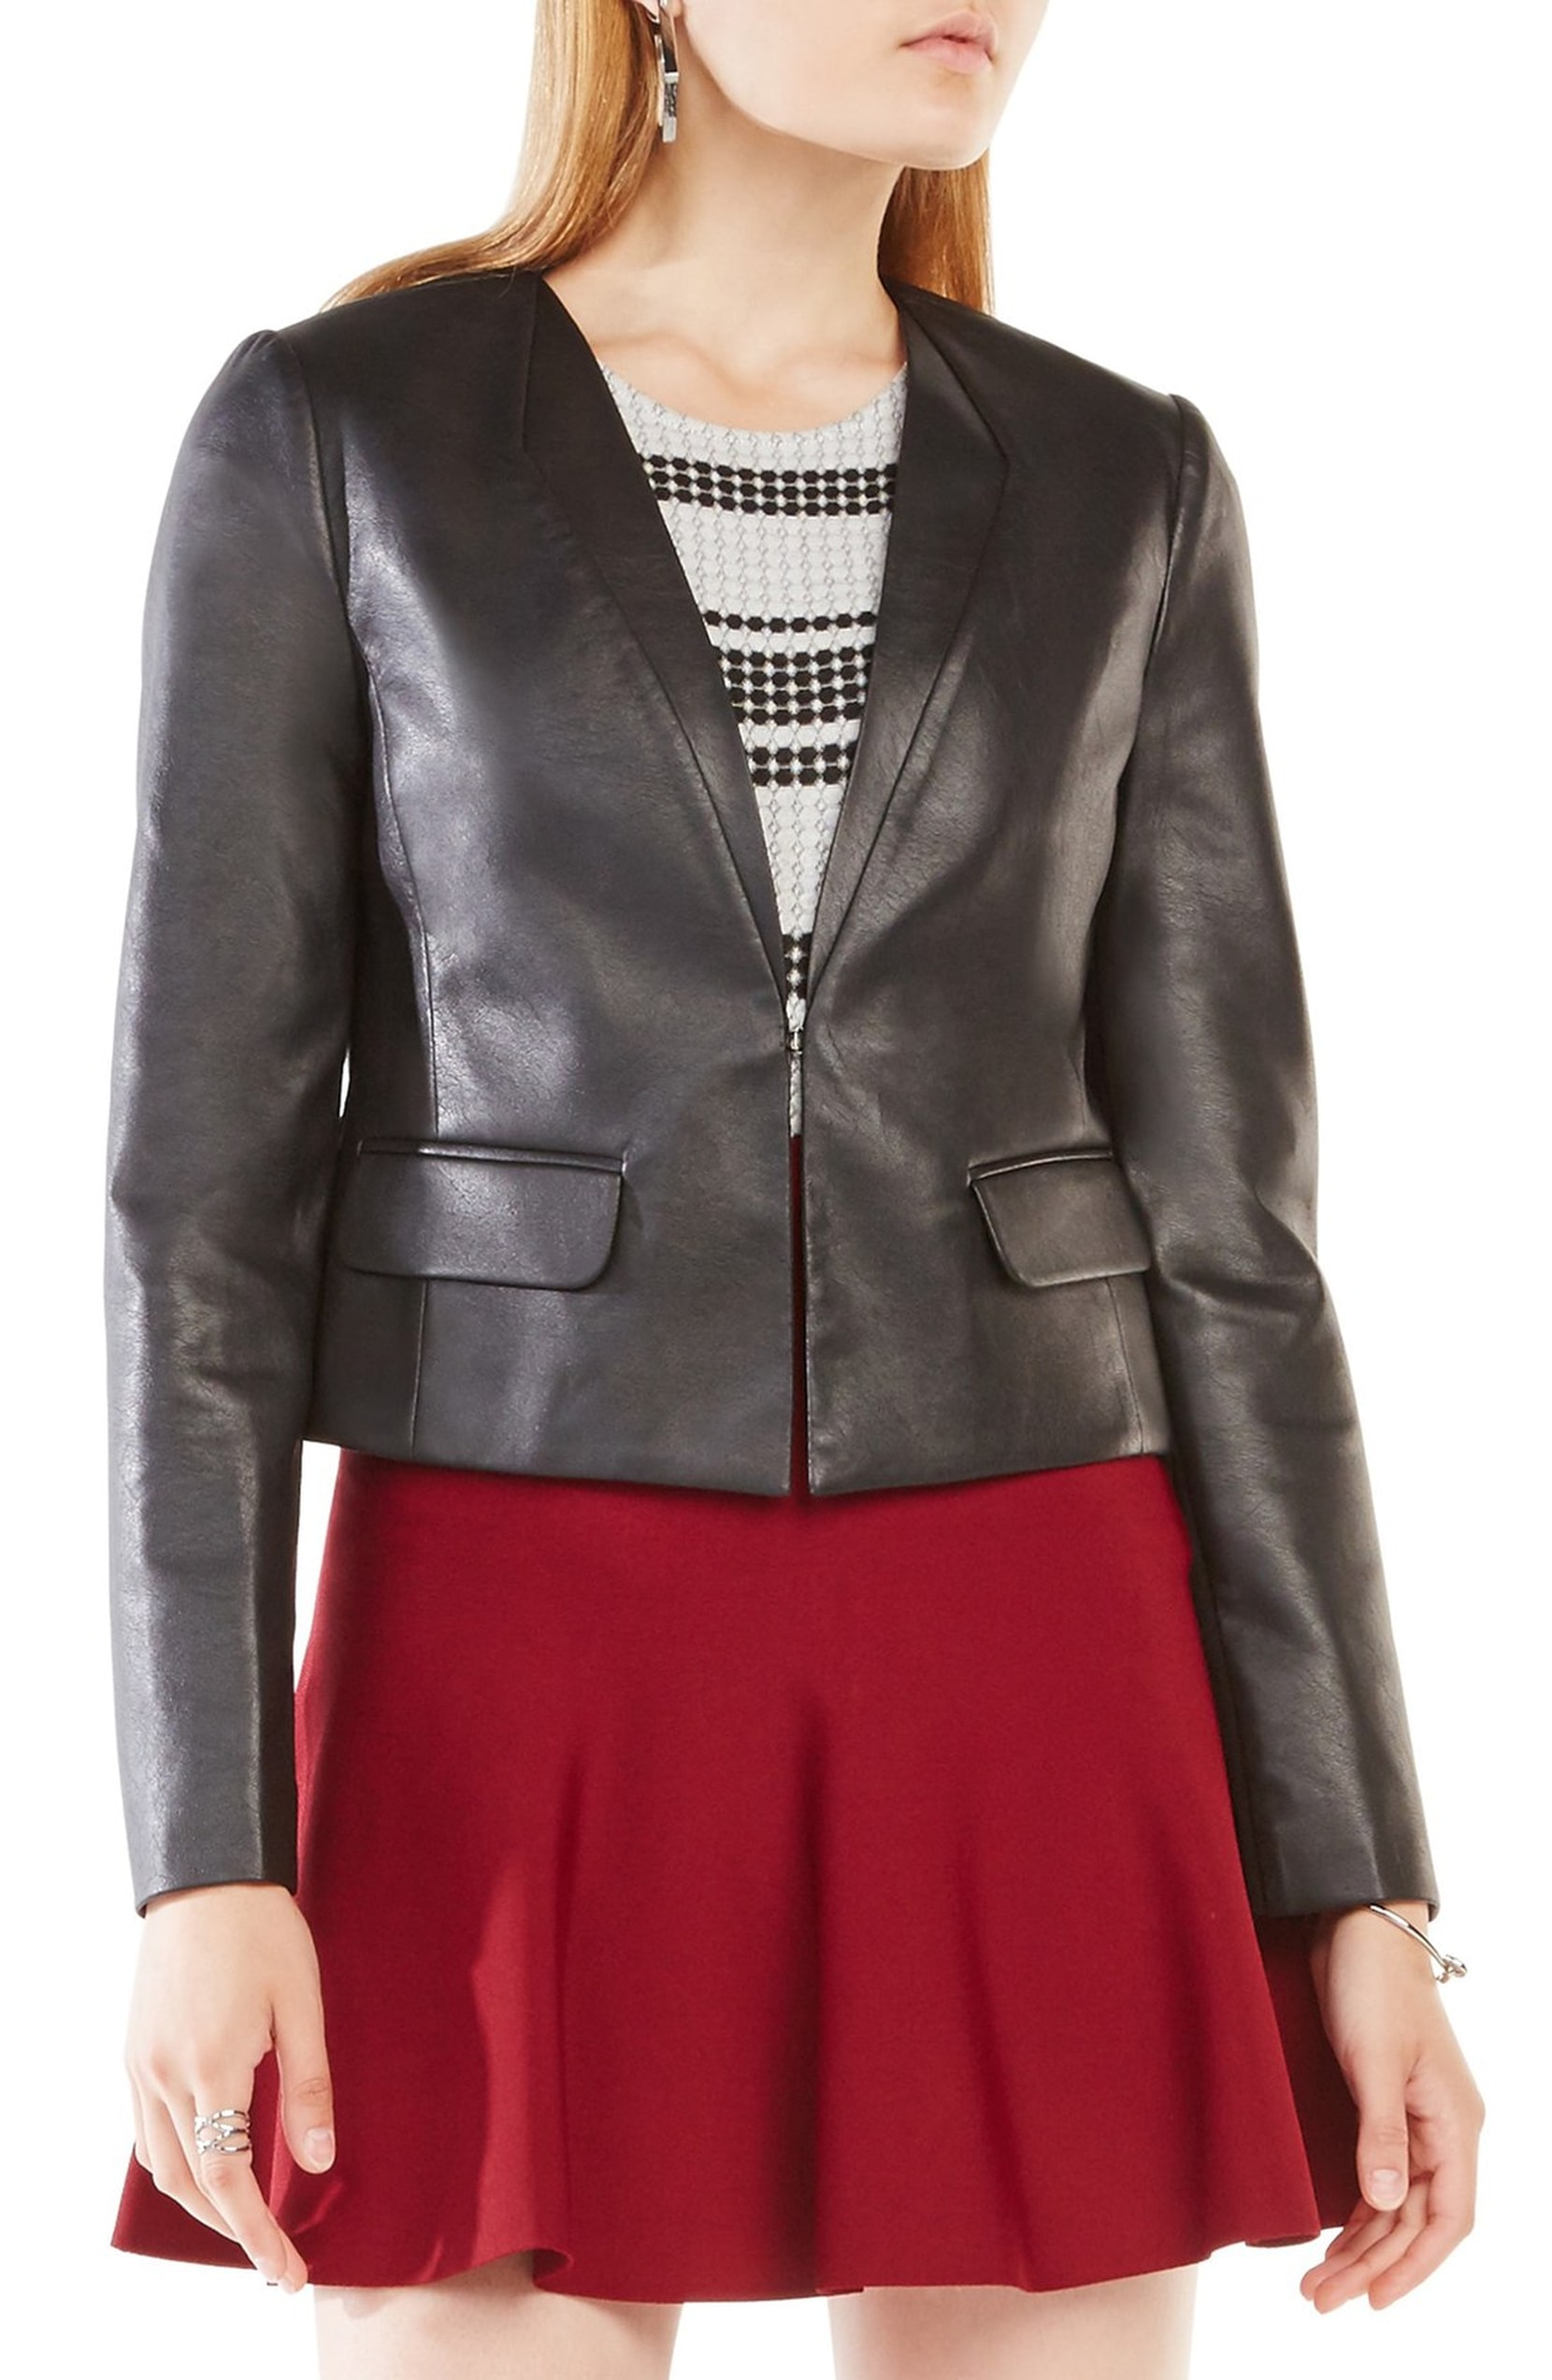 "BCBG like new condition Cruz Leather Jacket, Black, Size: Small<br /> <br /> ""An essential for all-season layering, this blazer-style faux-leather jacket has a posh lapel-stitched neck, slight peplum waist and stretchy ponte-knit panels that allow for more freedom of movement.<br /> <br />     Front hook-and-eye closure.<br />     Plunging V-neck.<br />     Long sleeves.<br />     Faux front flap pockets.<br />     Lined.<br />     100% polyurethane faux leather; 65% rayon, 30% nylon, 5% spandex ponte.<br />     Dry clean.<br />     By BCBGMAXAZRIA; imported.""<br /> <br /> Photo and description credits: nordstrom.com"